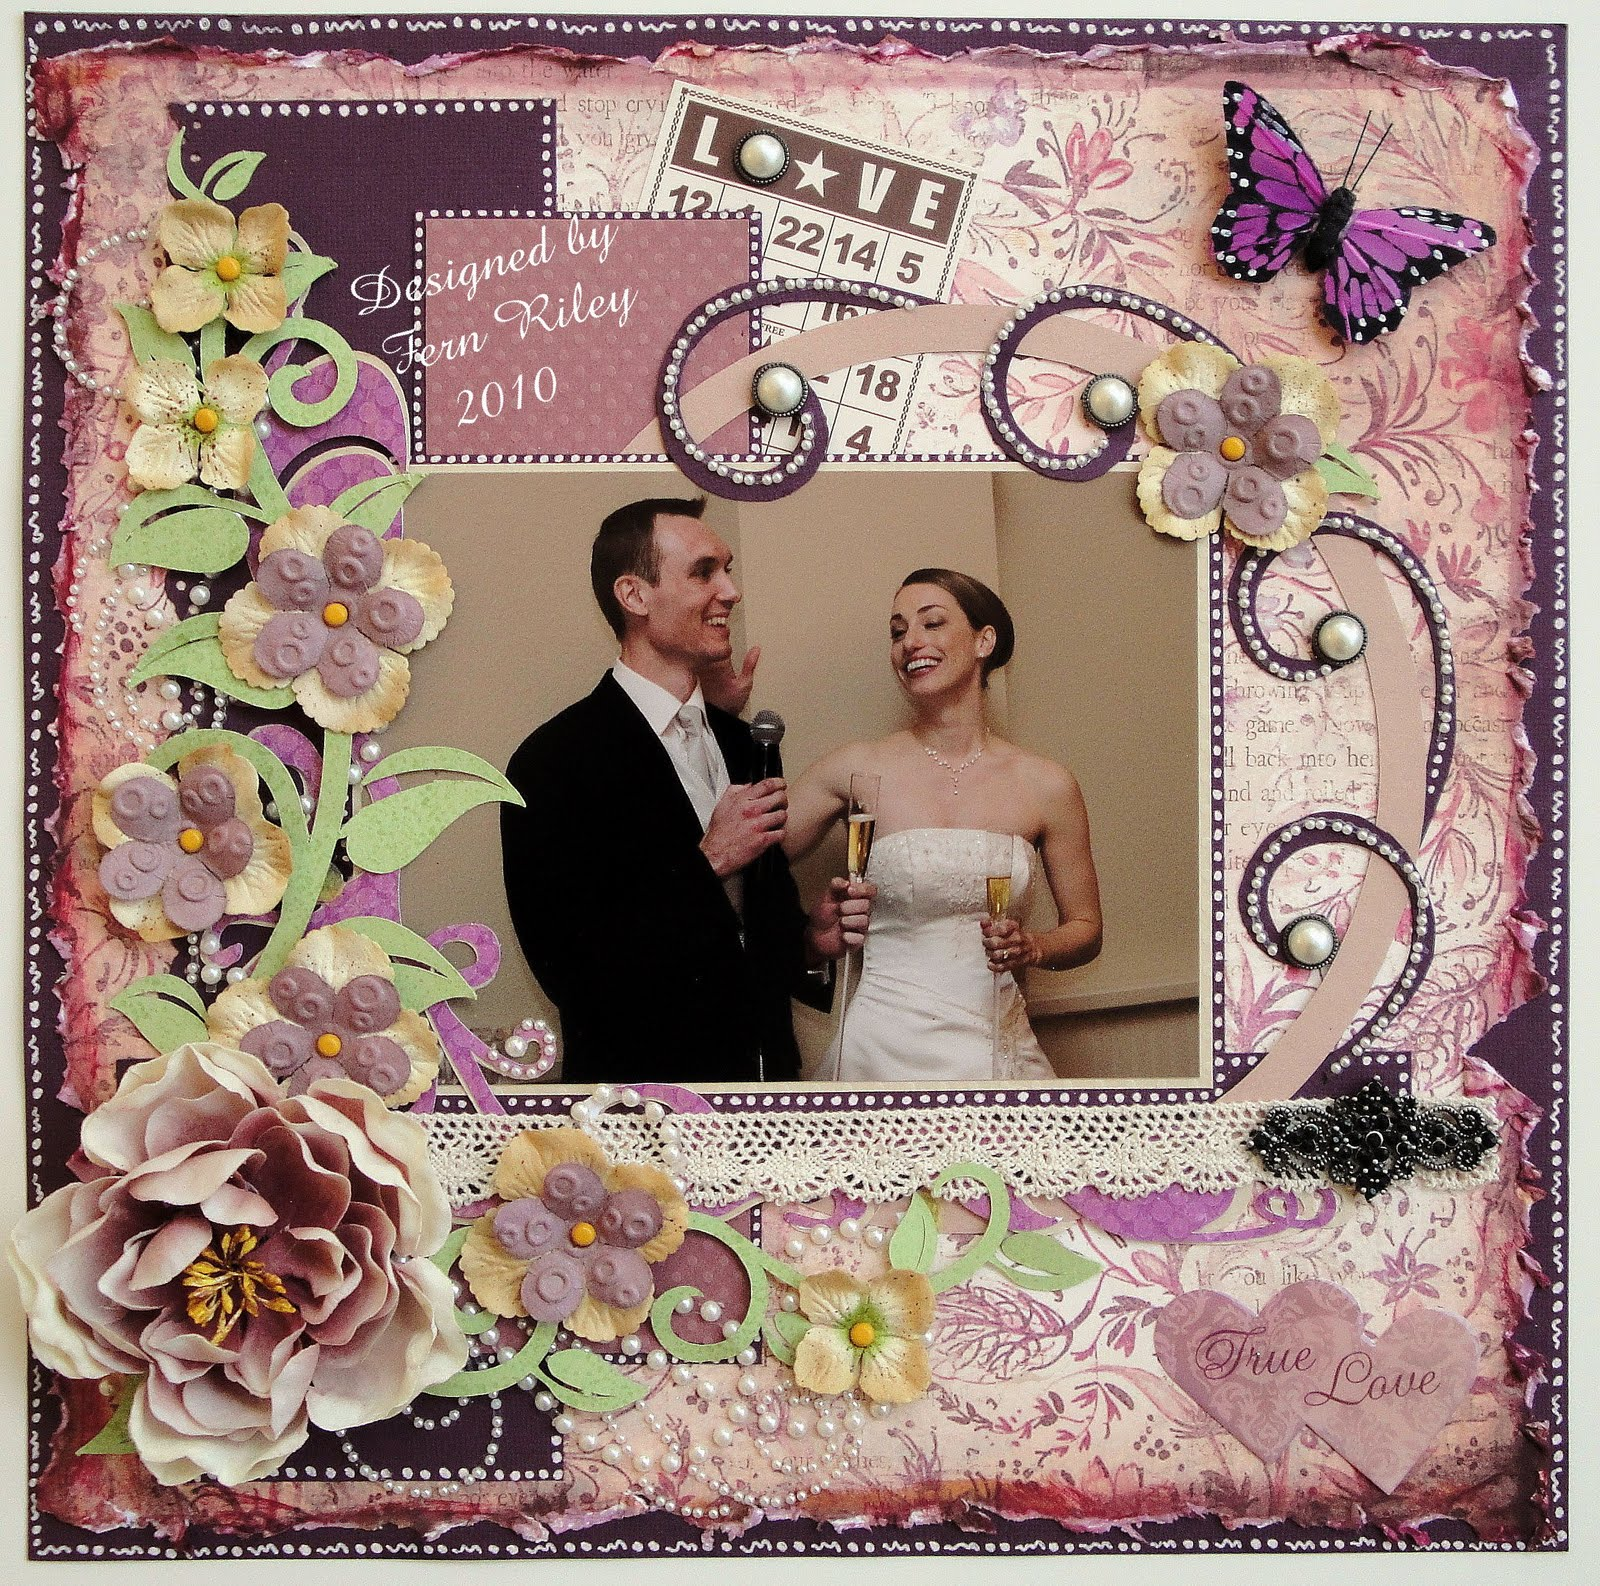 drDQ wedding scrapbook Wedding scrap book Love Inspiration For Scrapbook